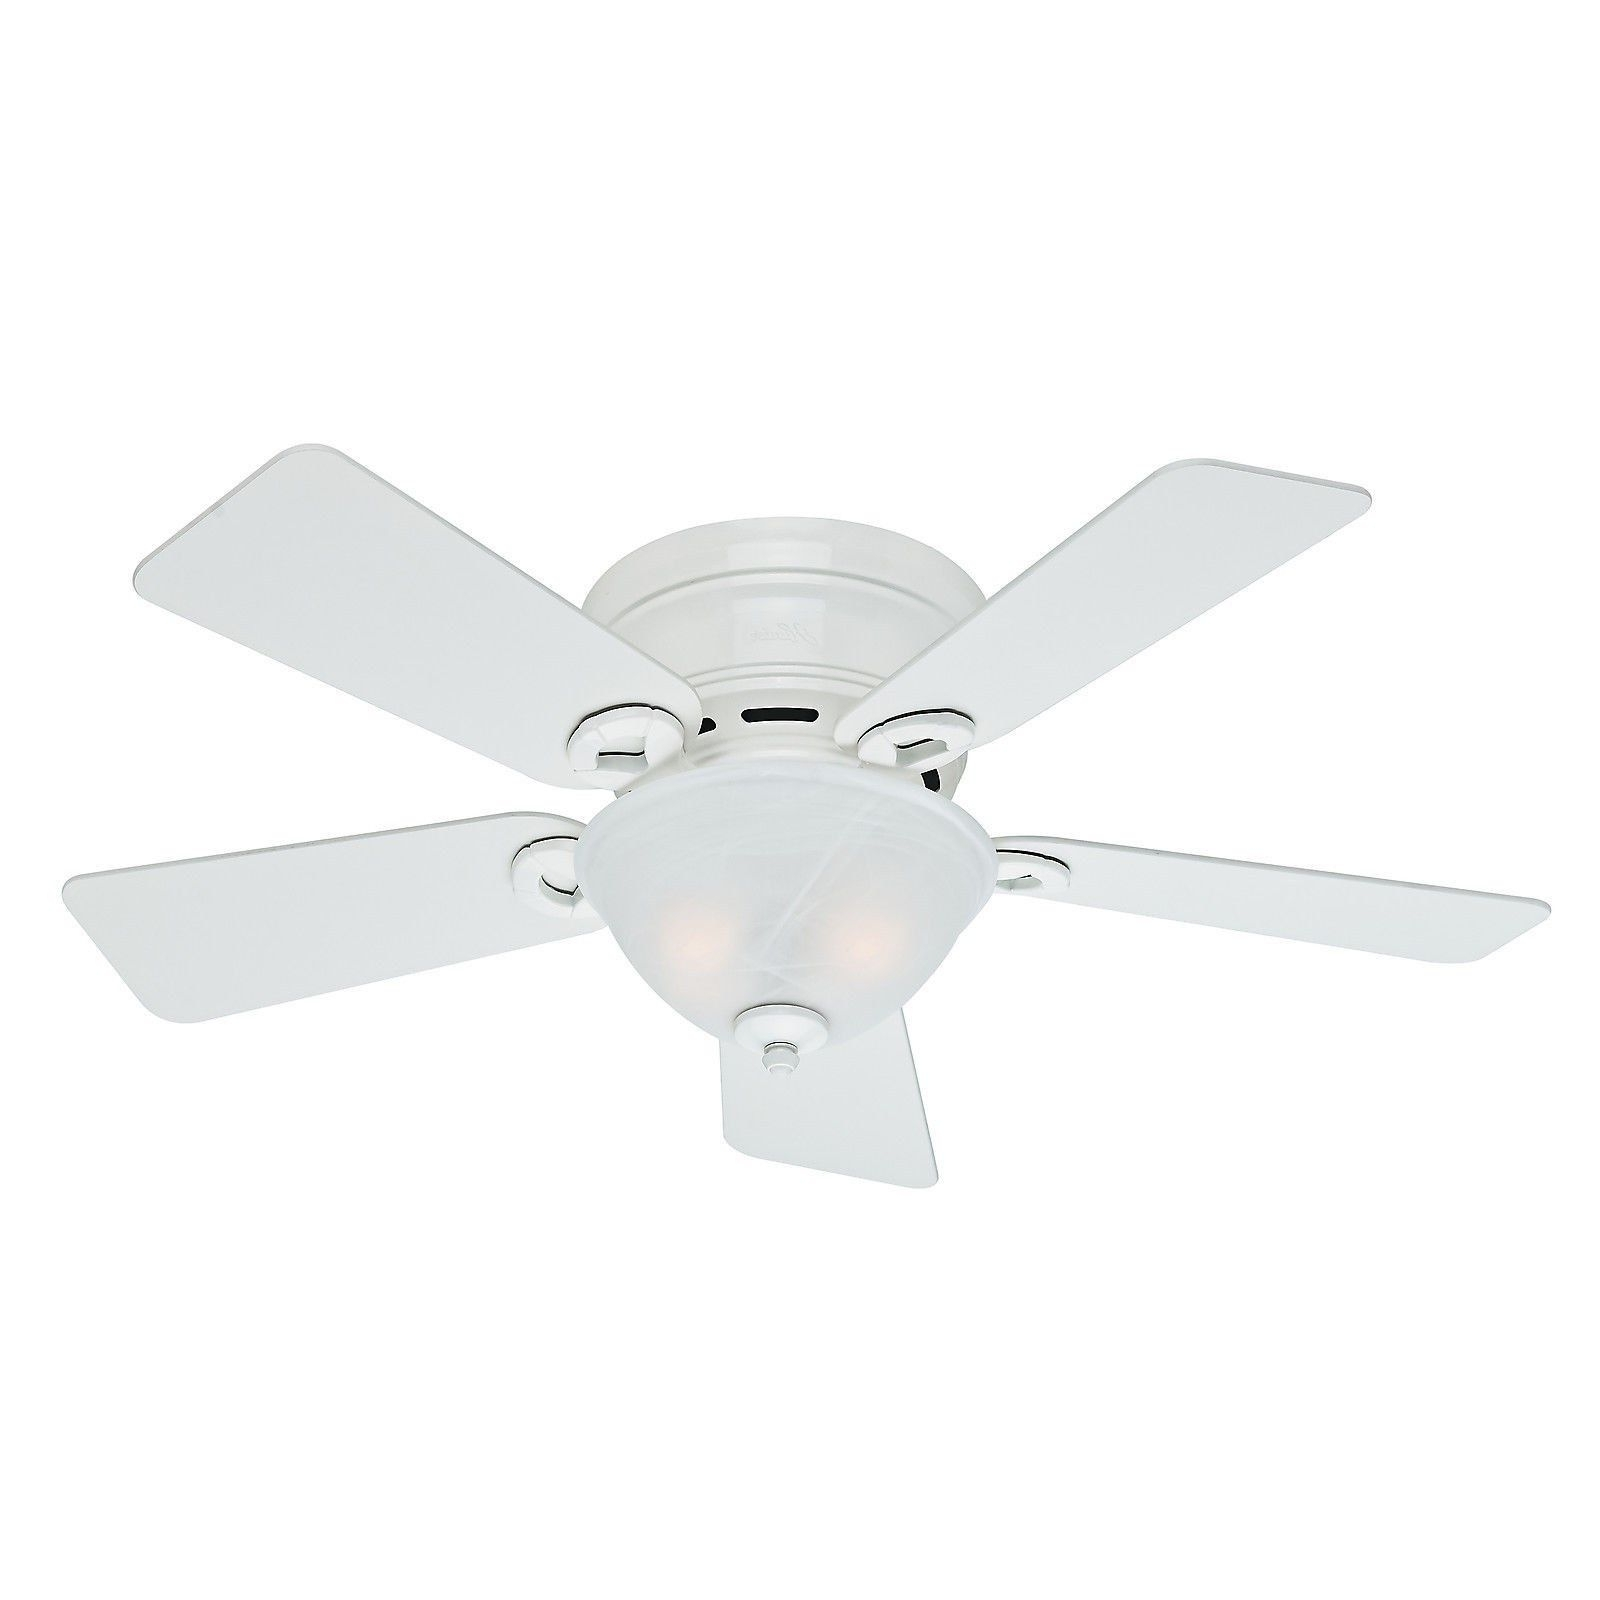 48 Inch Outdoor Ceiling Fans With Light Within Well Known Low Profile Outdoor Ceiling Fans Low Profile Outdoor Ceiling Light (Gallery 20 of 20)